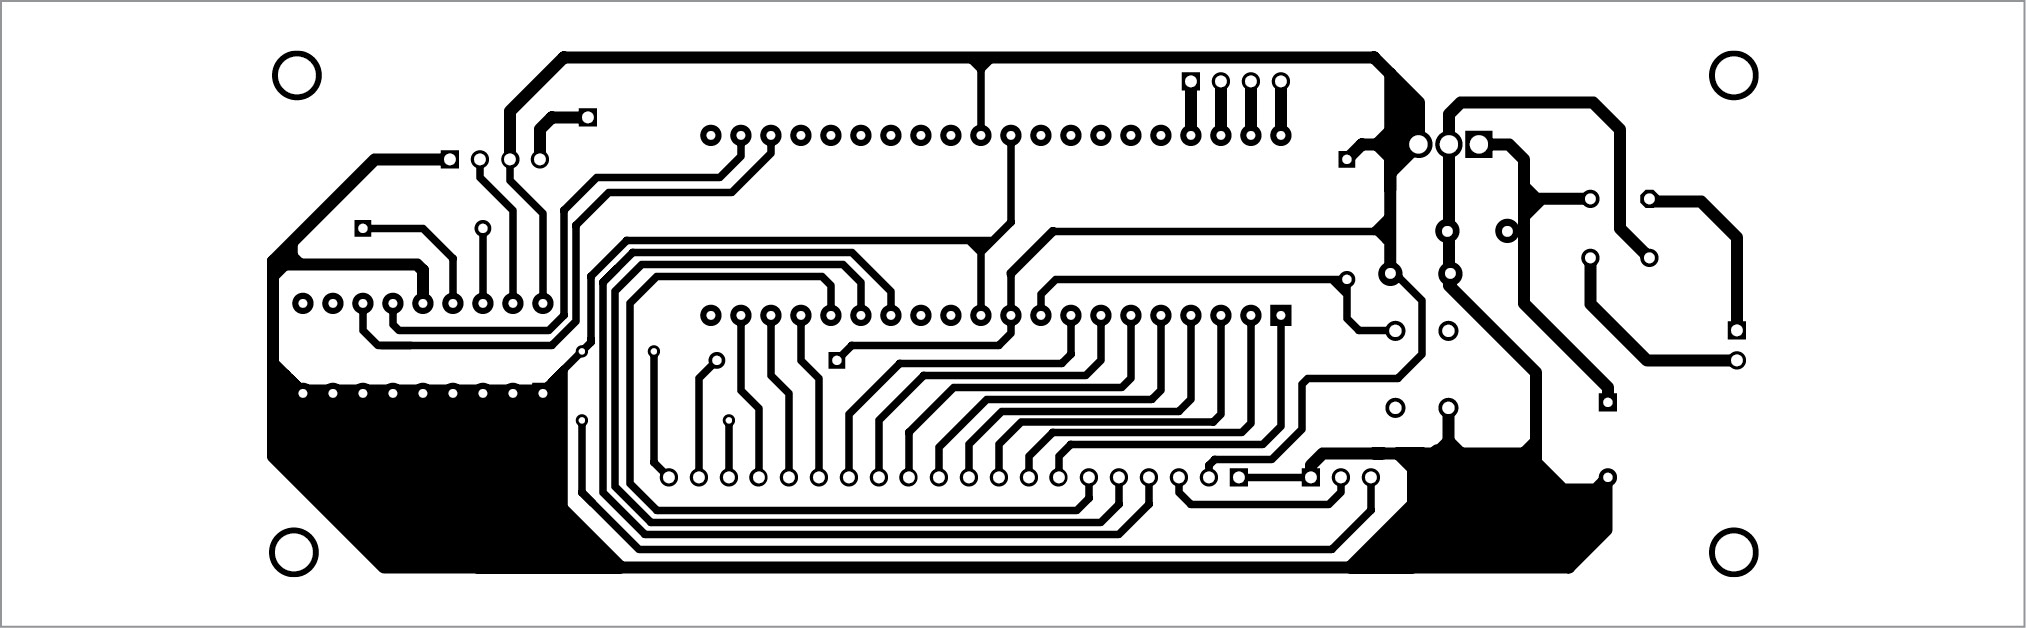 PCB layout for transmitter section